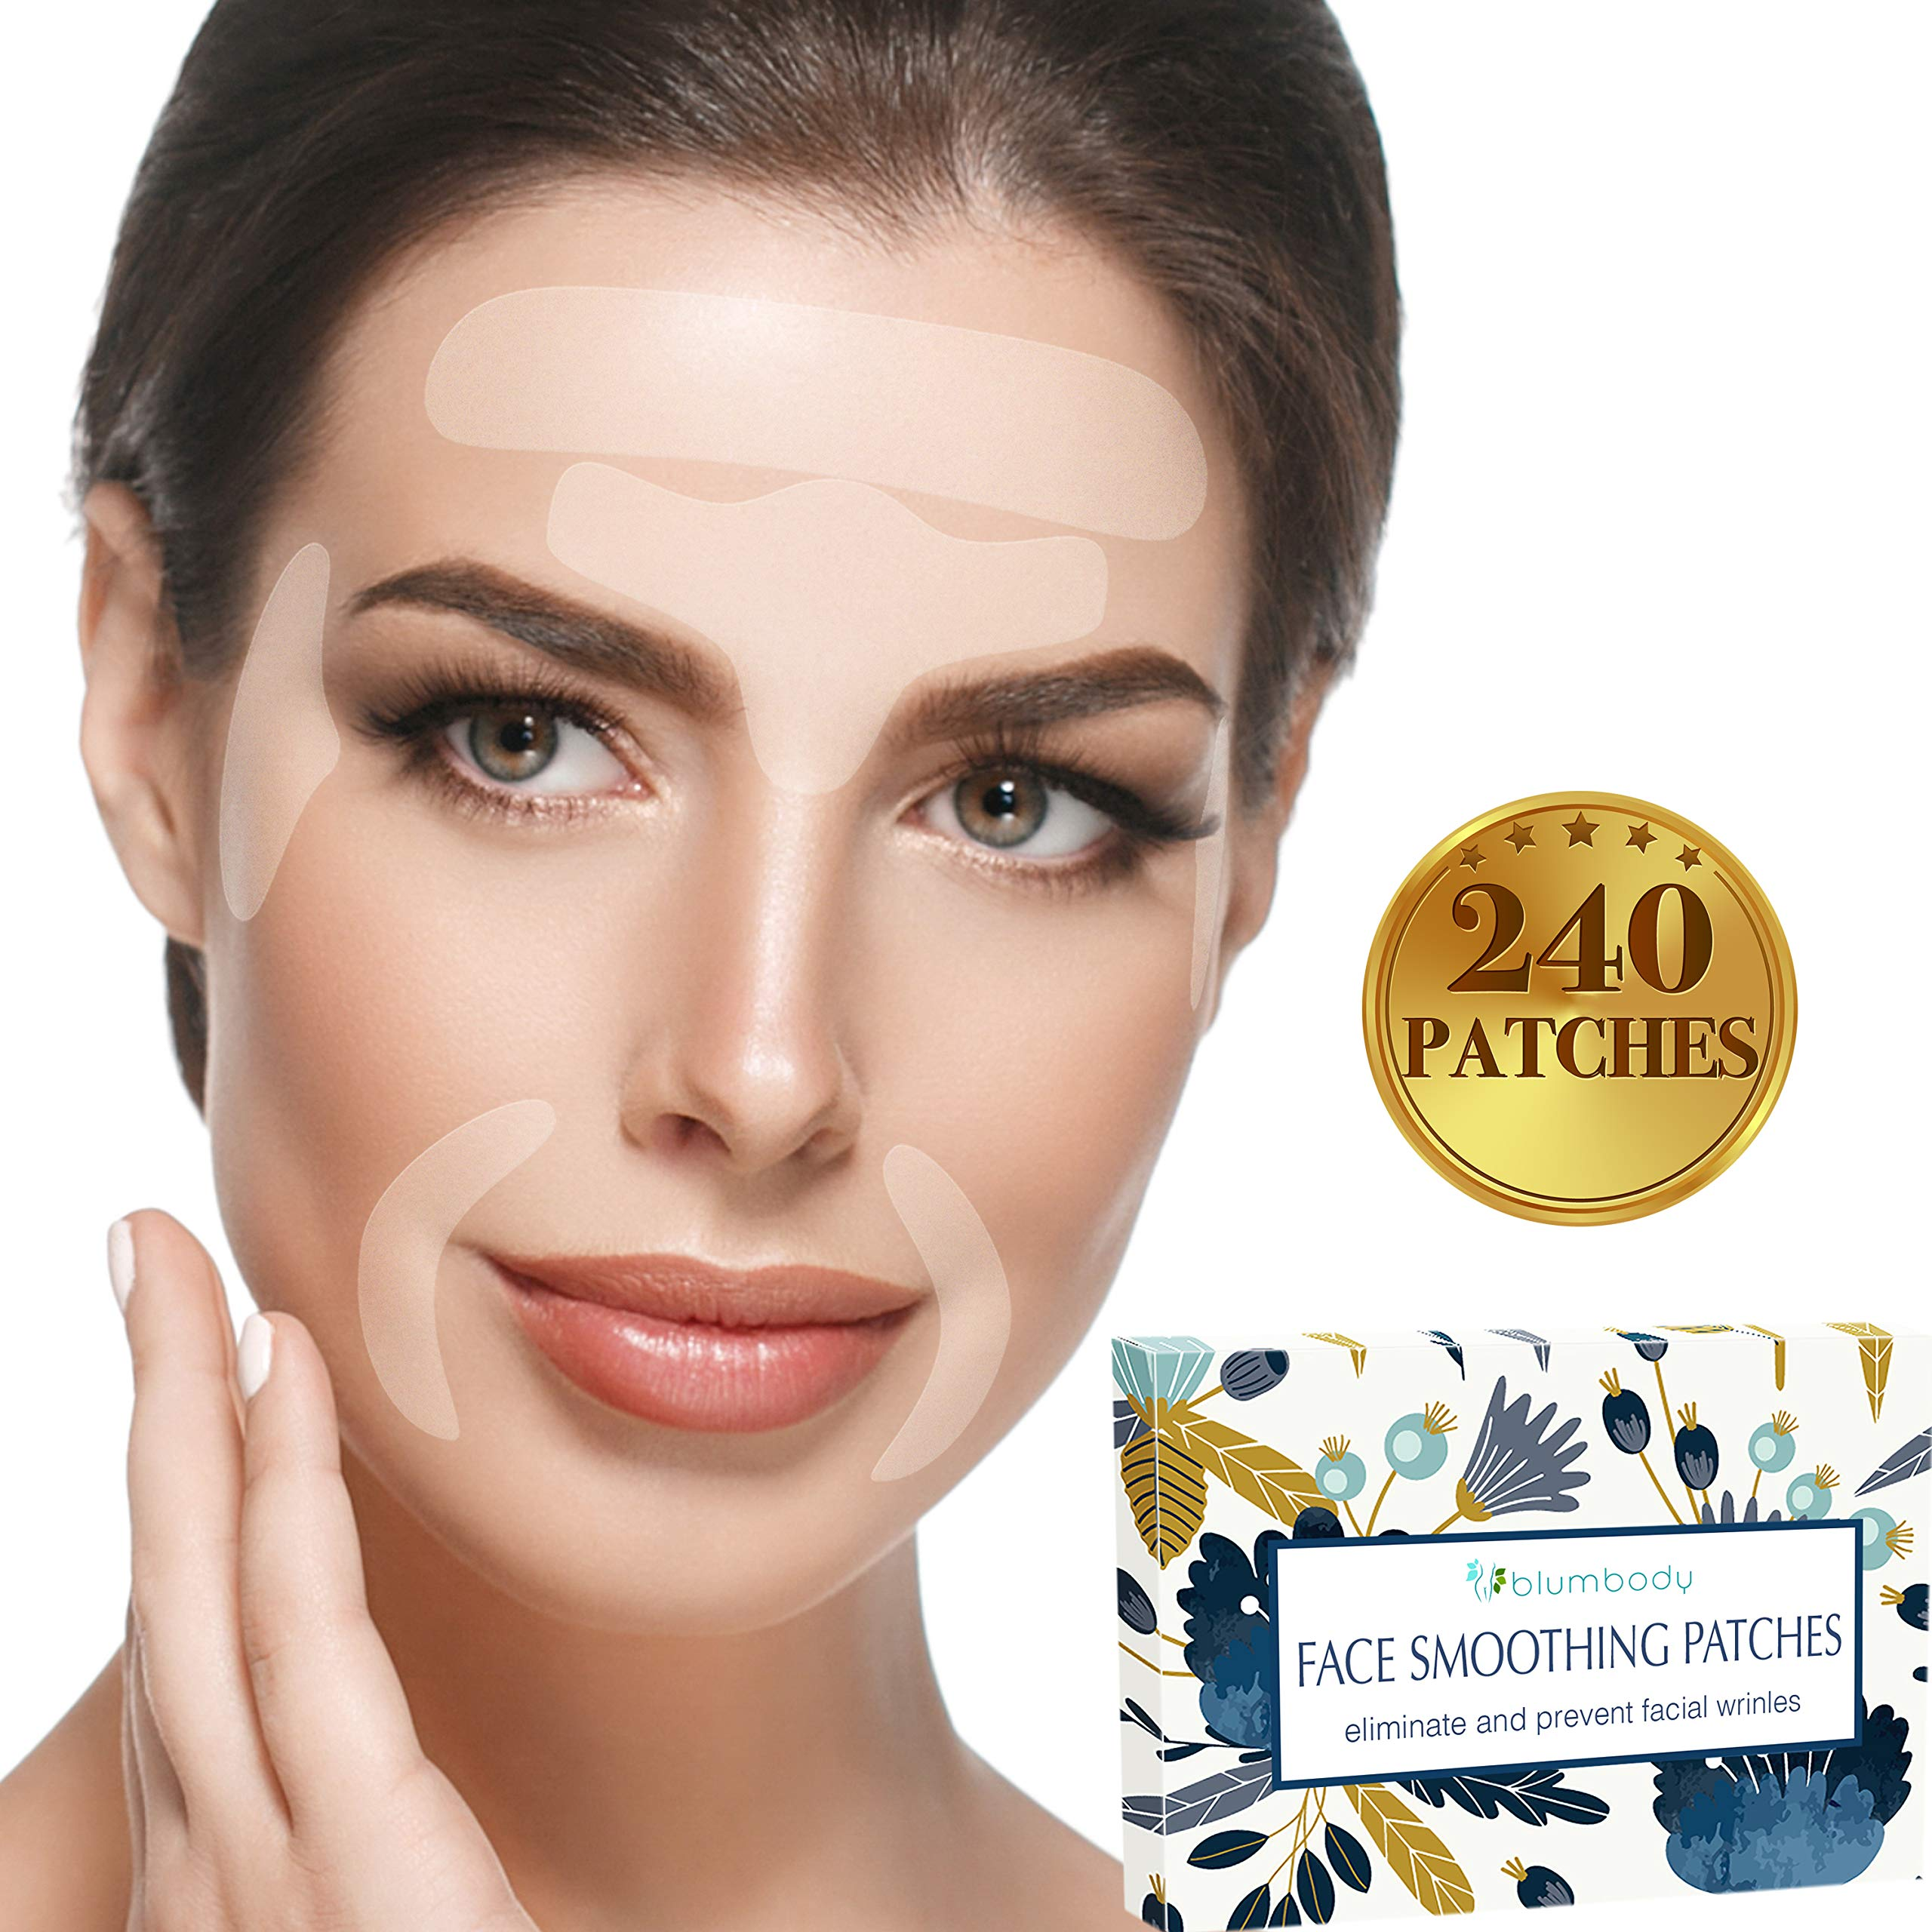 Facial Patches Wrinkle Remover Strips - 240 Face Tape Smoothing: Forehead Wrinkle Patches, Eye Wrinkle Patches, Wrinkles Around Mouth & Upper Lip Wrinkle Treatment Reusable Smoothing Wrinkle Patches by BLUMBODY